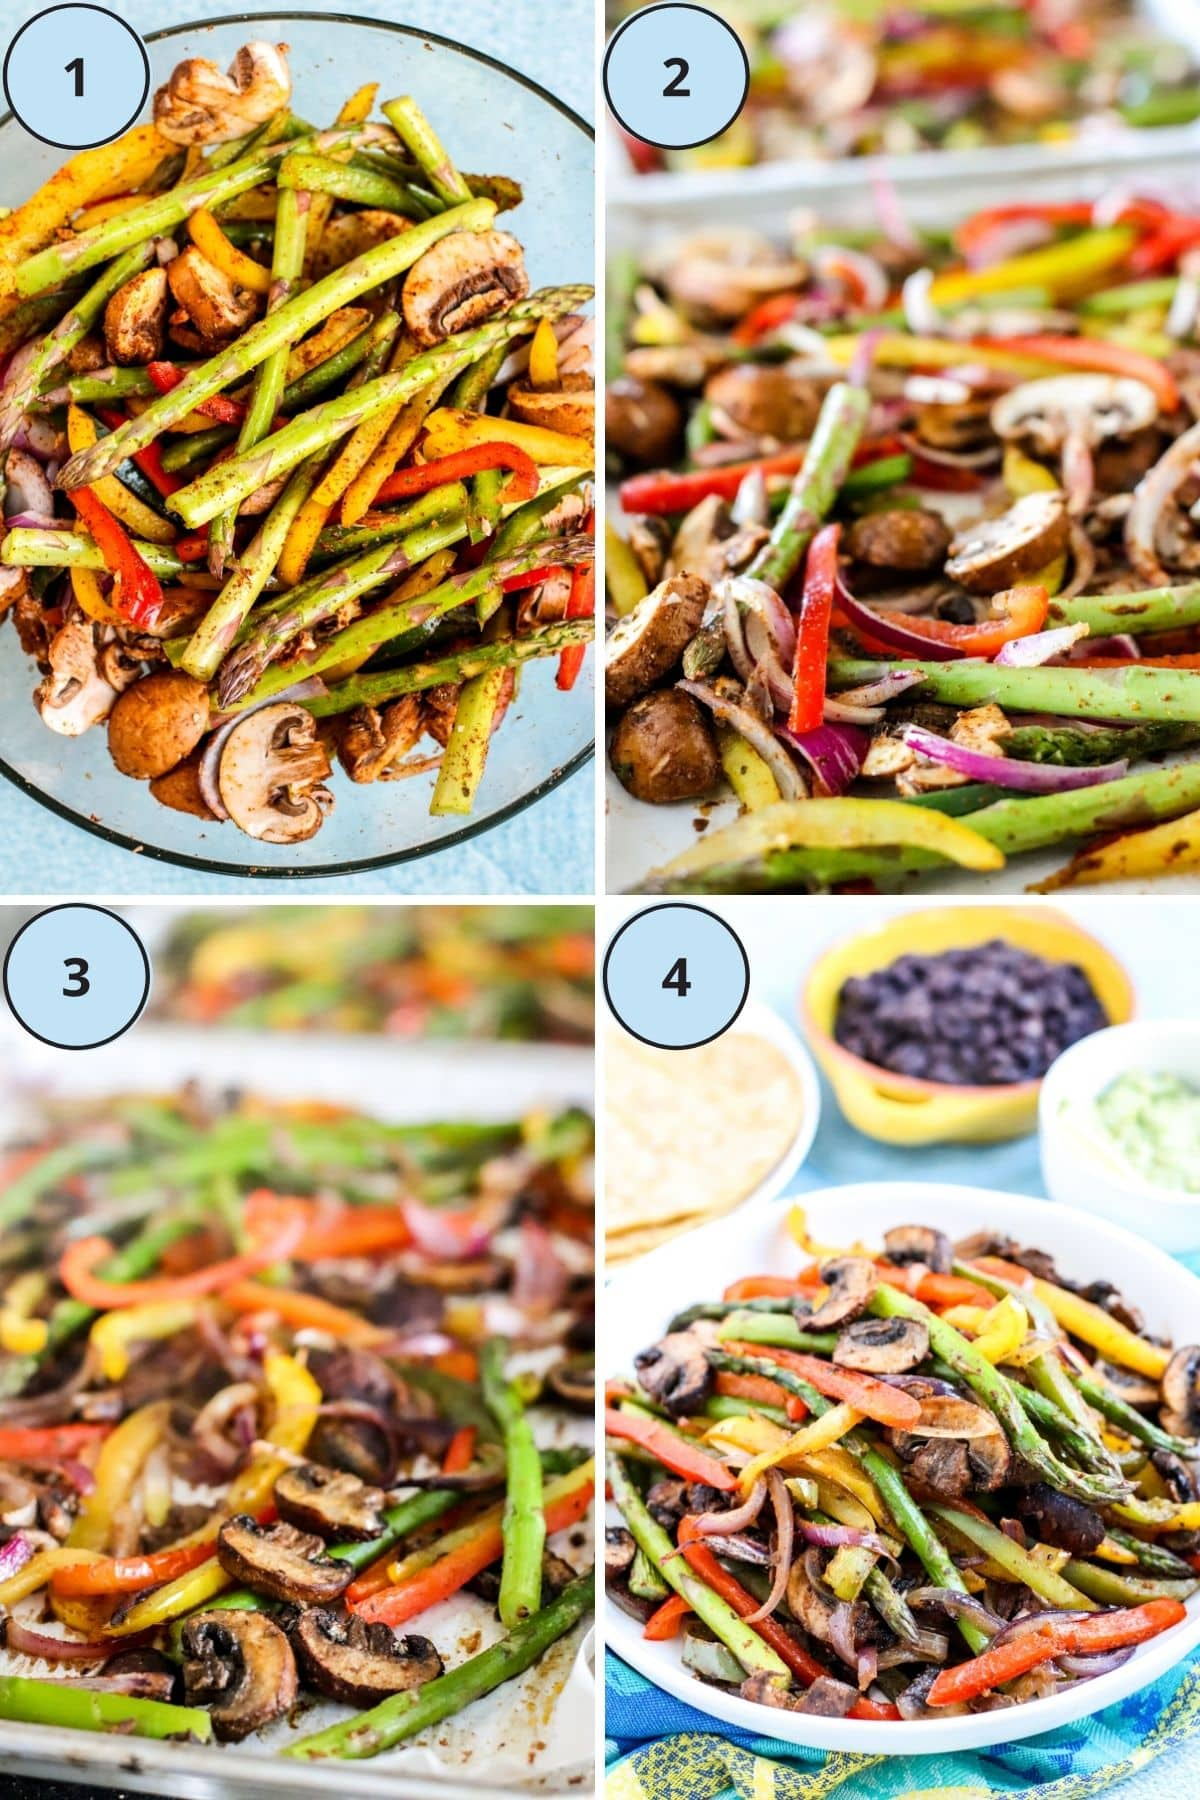 Collage of 4 images showing the step-by-step process for making this recipe